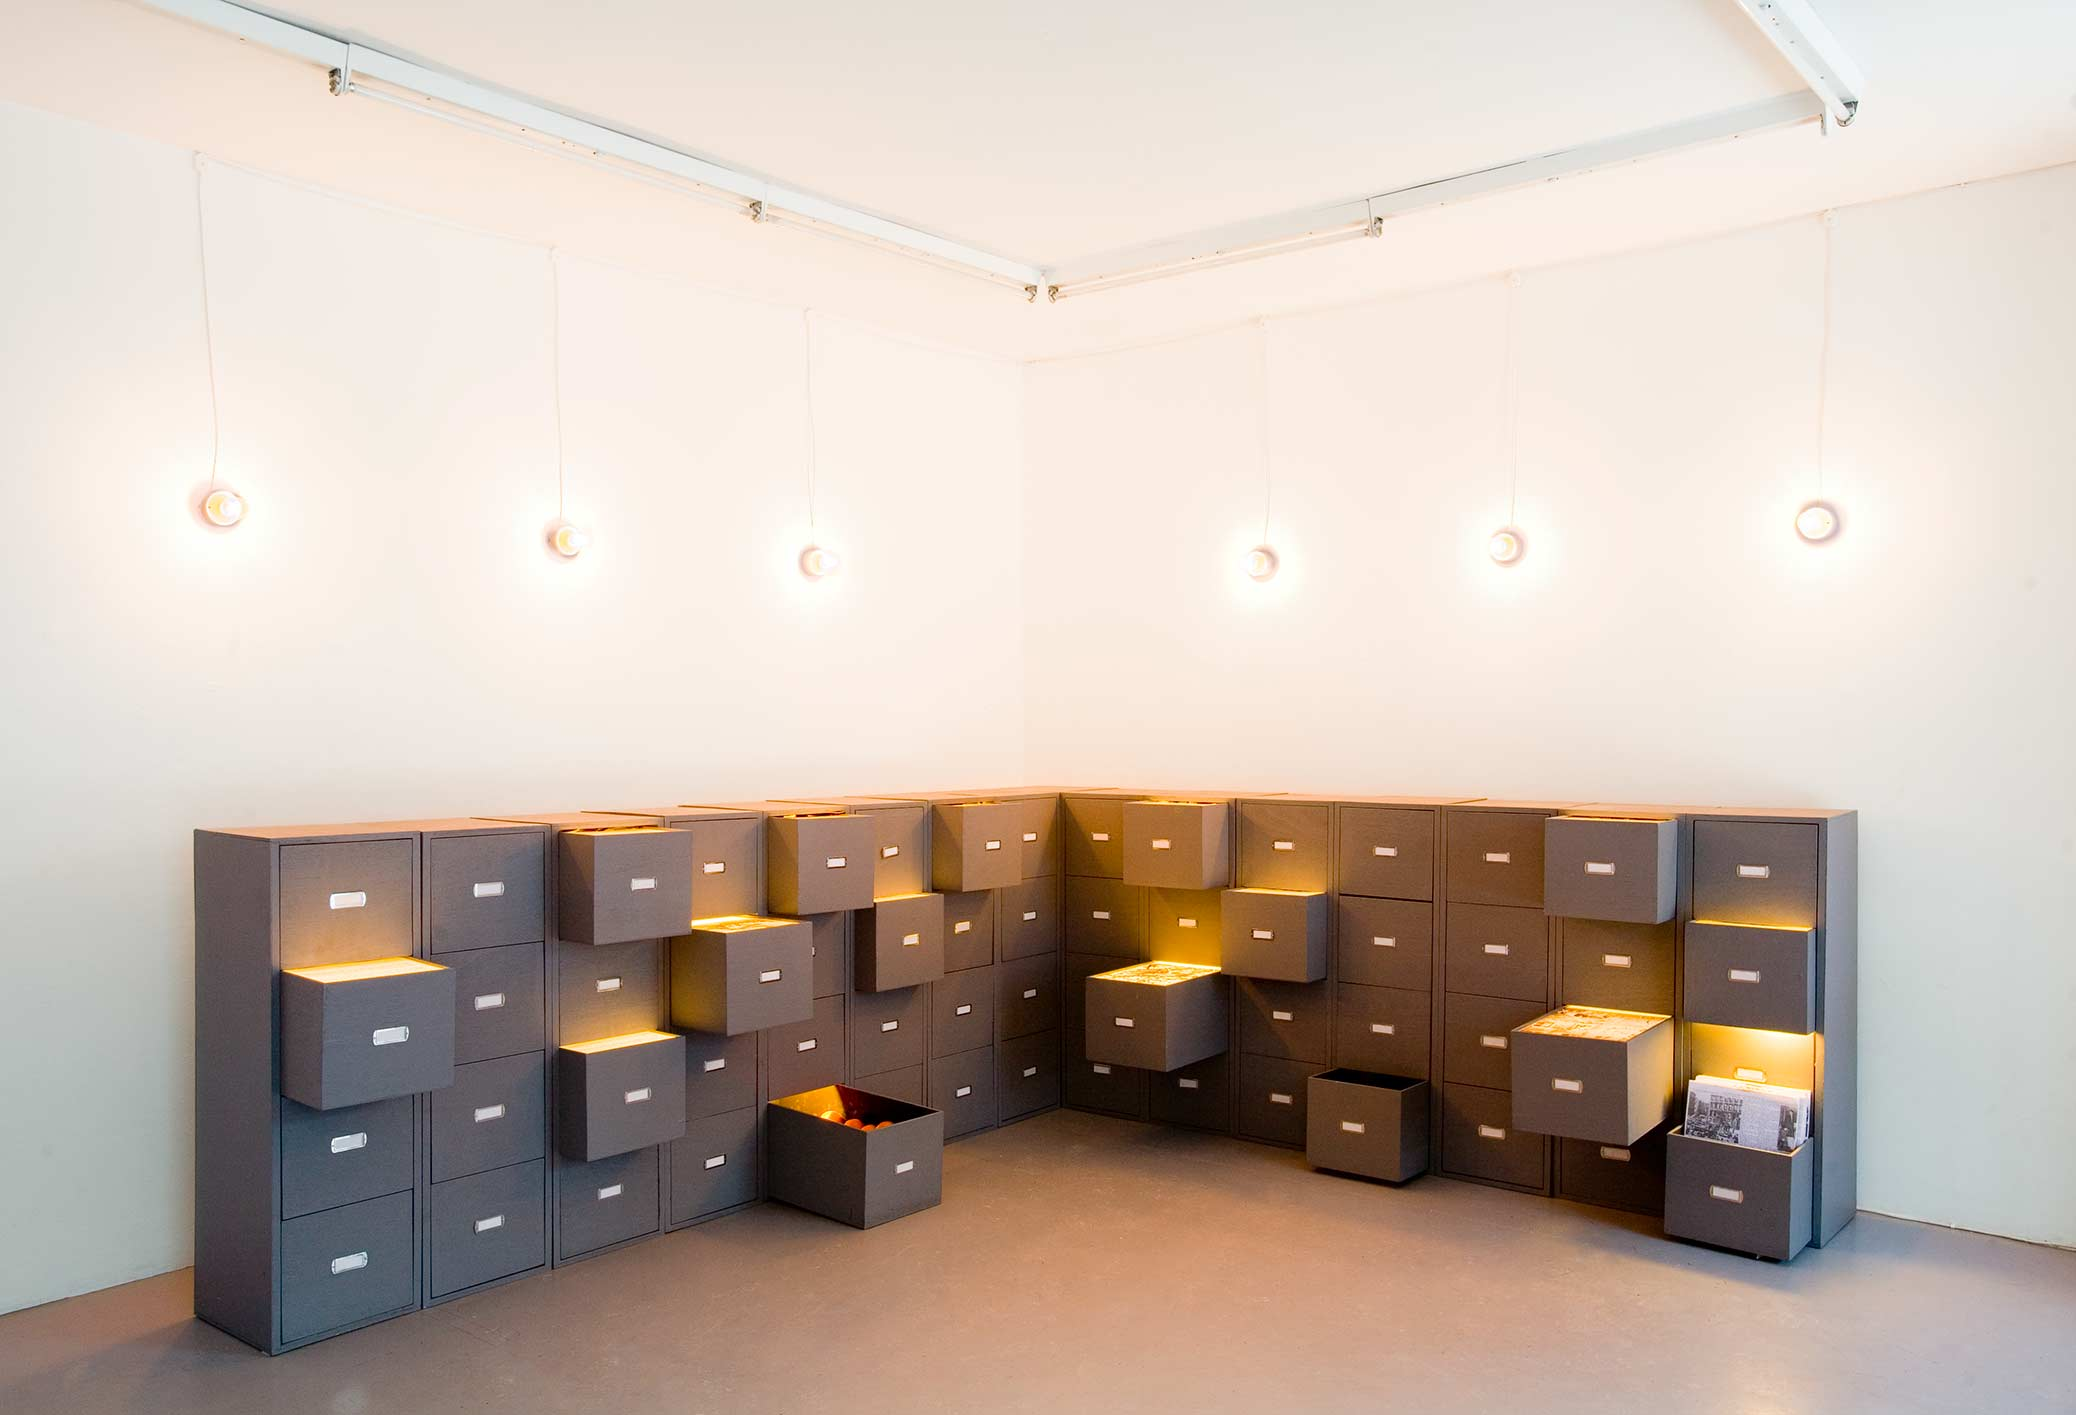 The Collectors, installation with filing cabinets at Galleri Box.